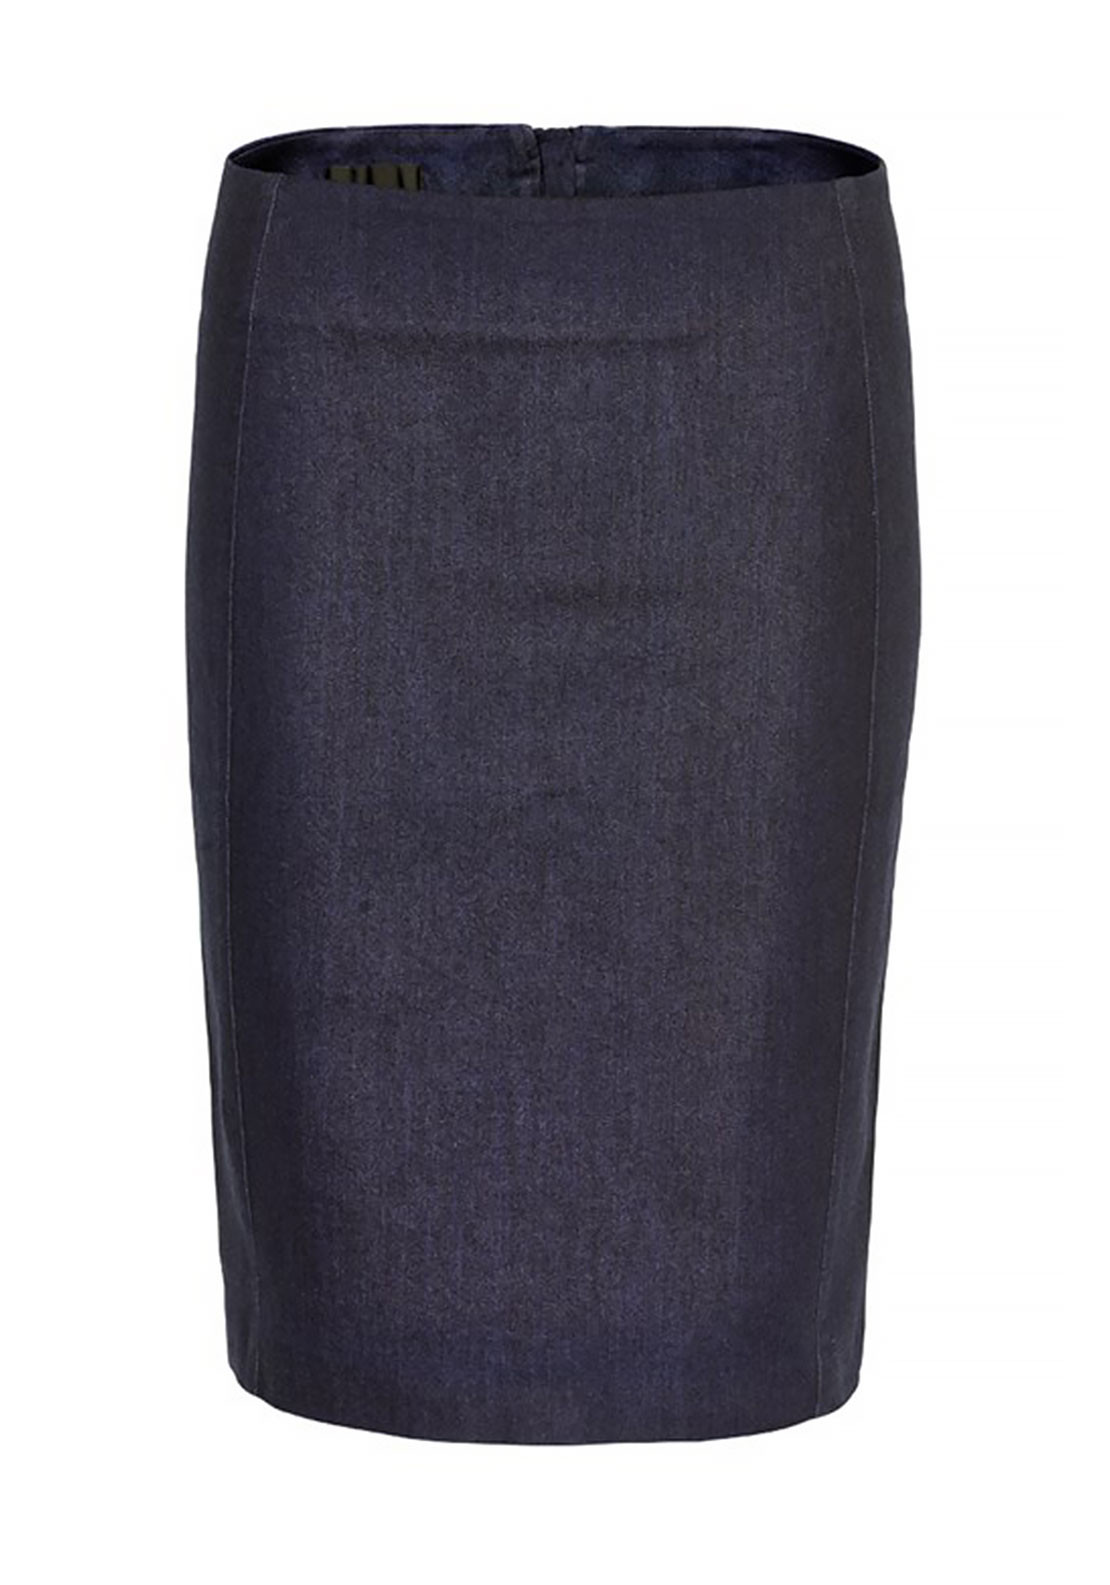 Inwear Canny Denim Midi Pencil Skirt, Blue